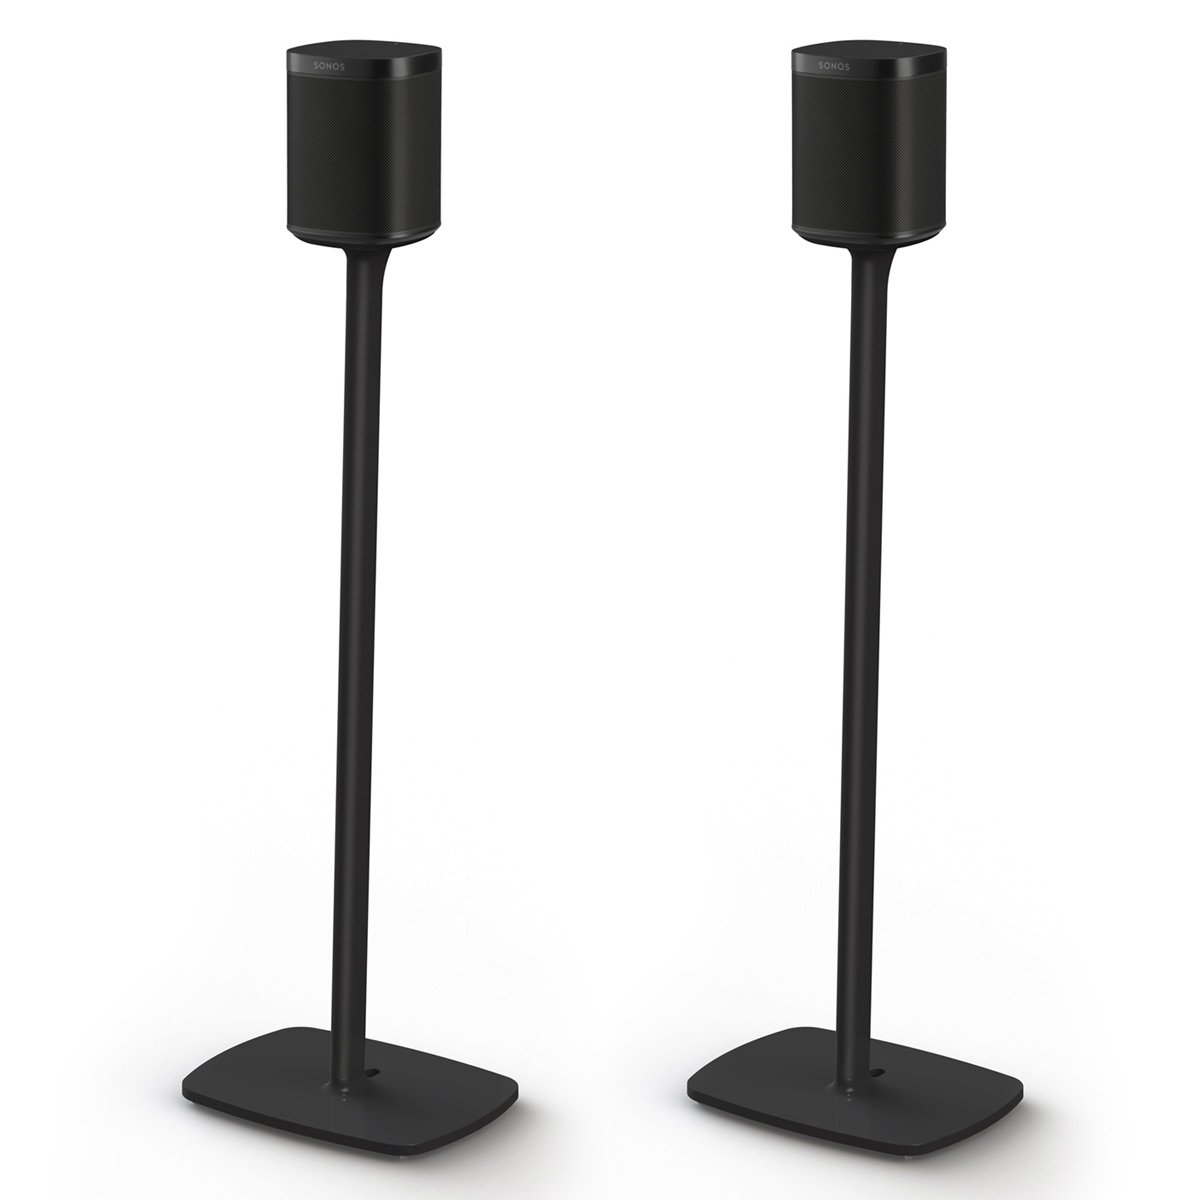 Flexson Floor Stands for Sonos One - Pair (Black) by Flexson